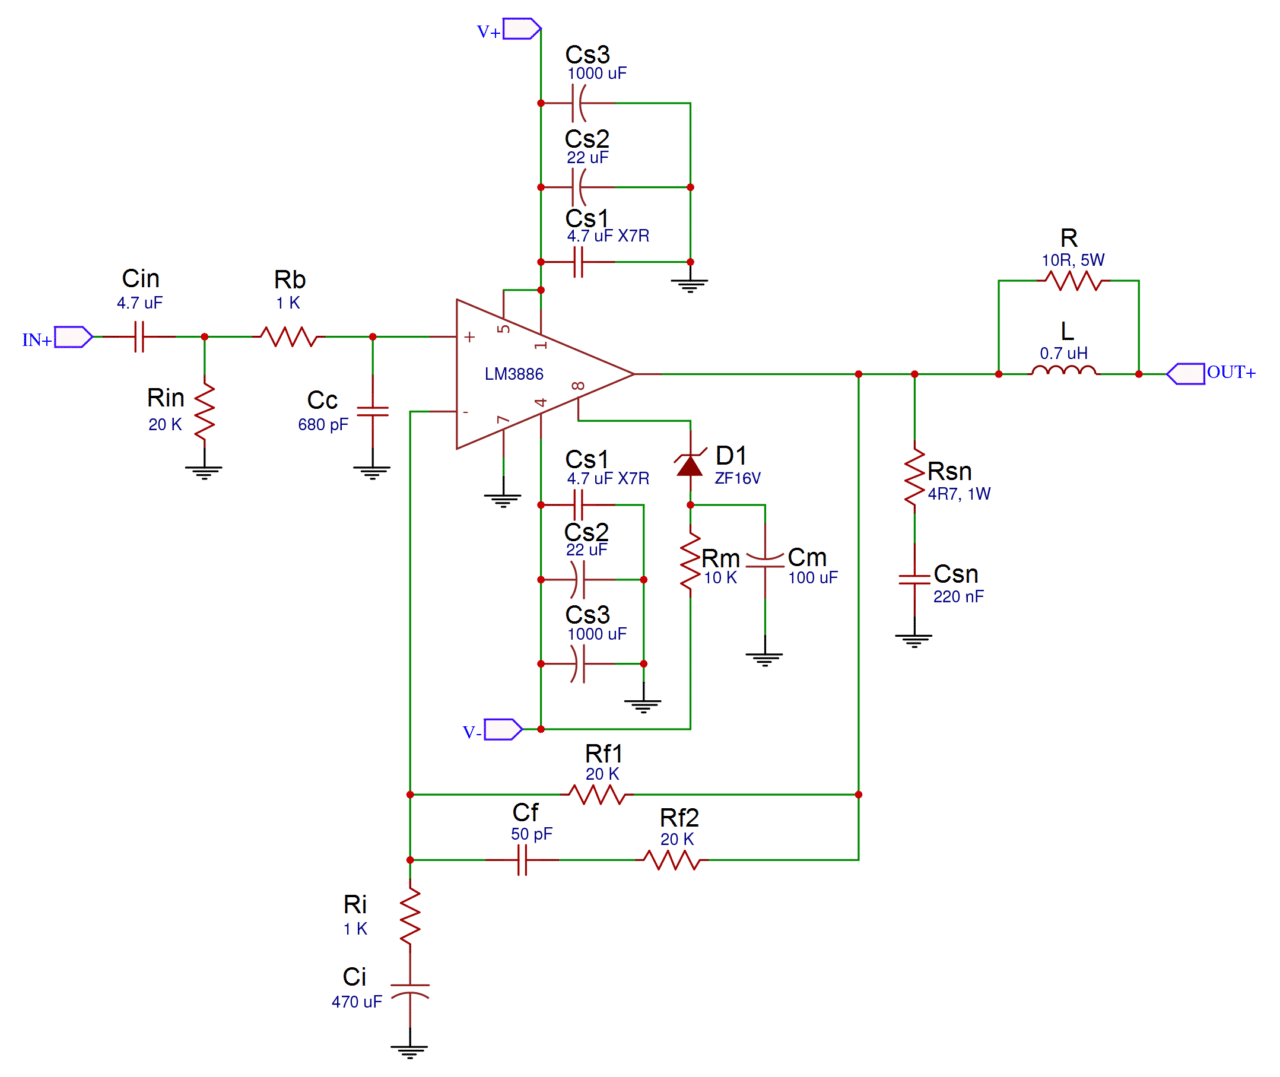 A Complete Guide To Design And Build Hi Fi Lm3886 Amplifier 50 Watt Transistor Circuit Ill Be Using The Schematic Below Its Basically Same As One In Datasheet But With Optional Stability Components Included